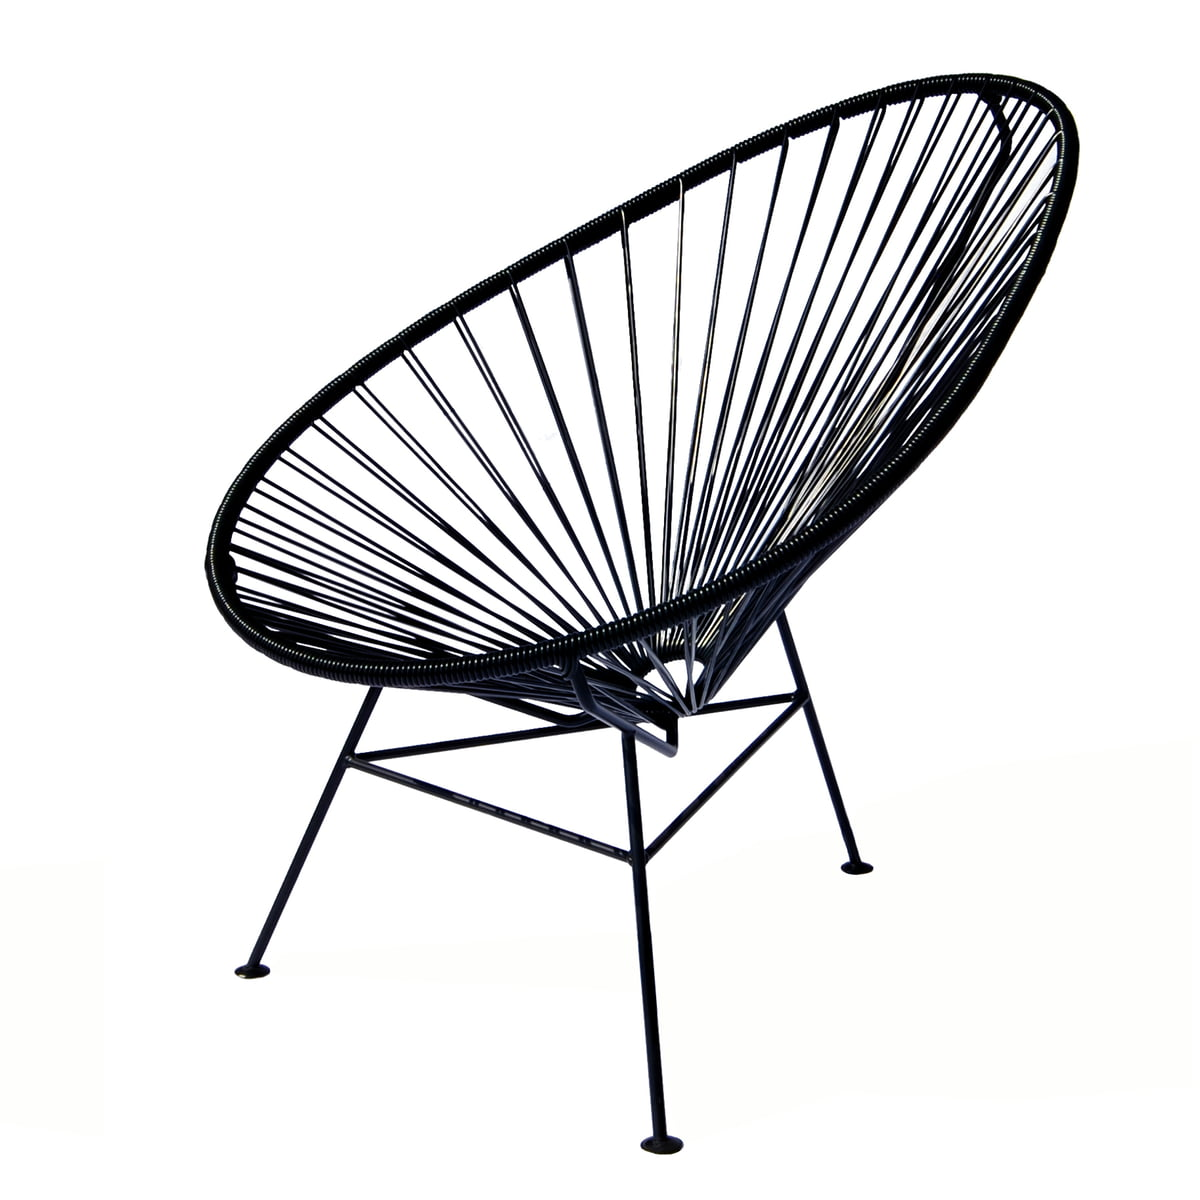 Acapulco chair dimensions - Ok Design The Acapulco Chair Black